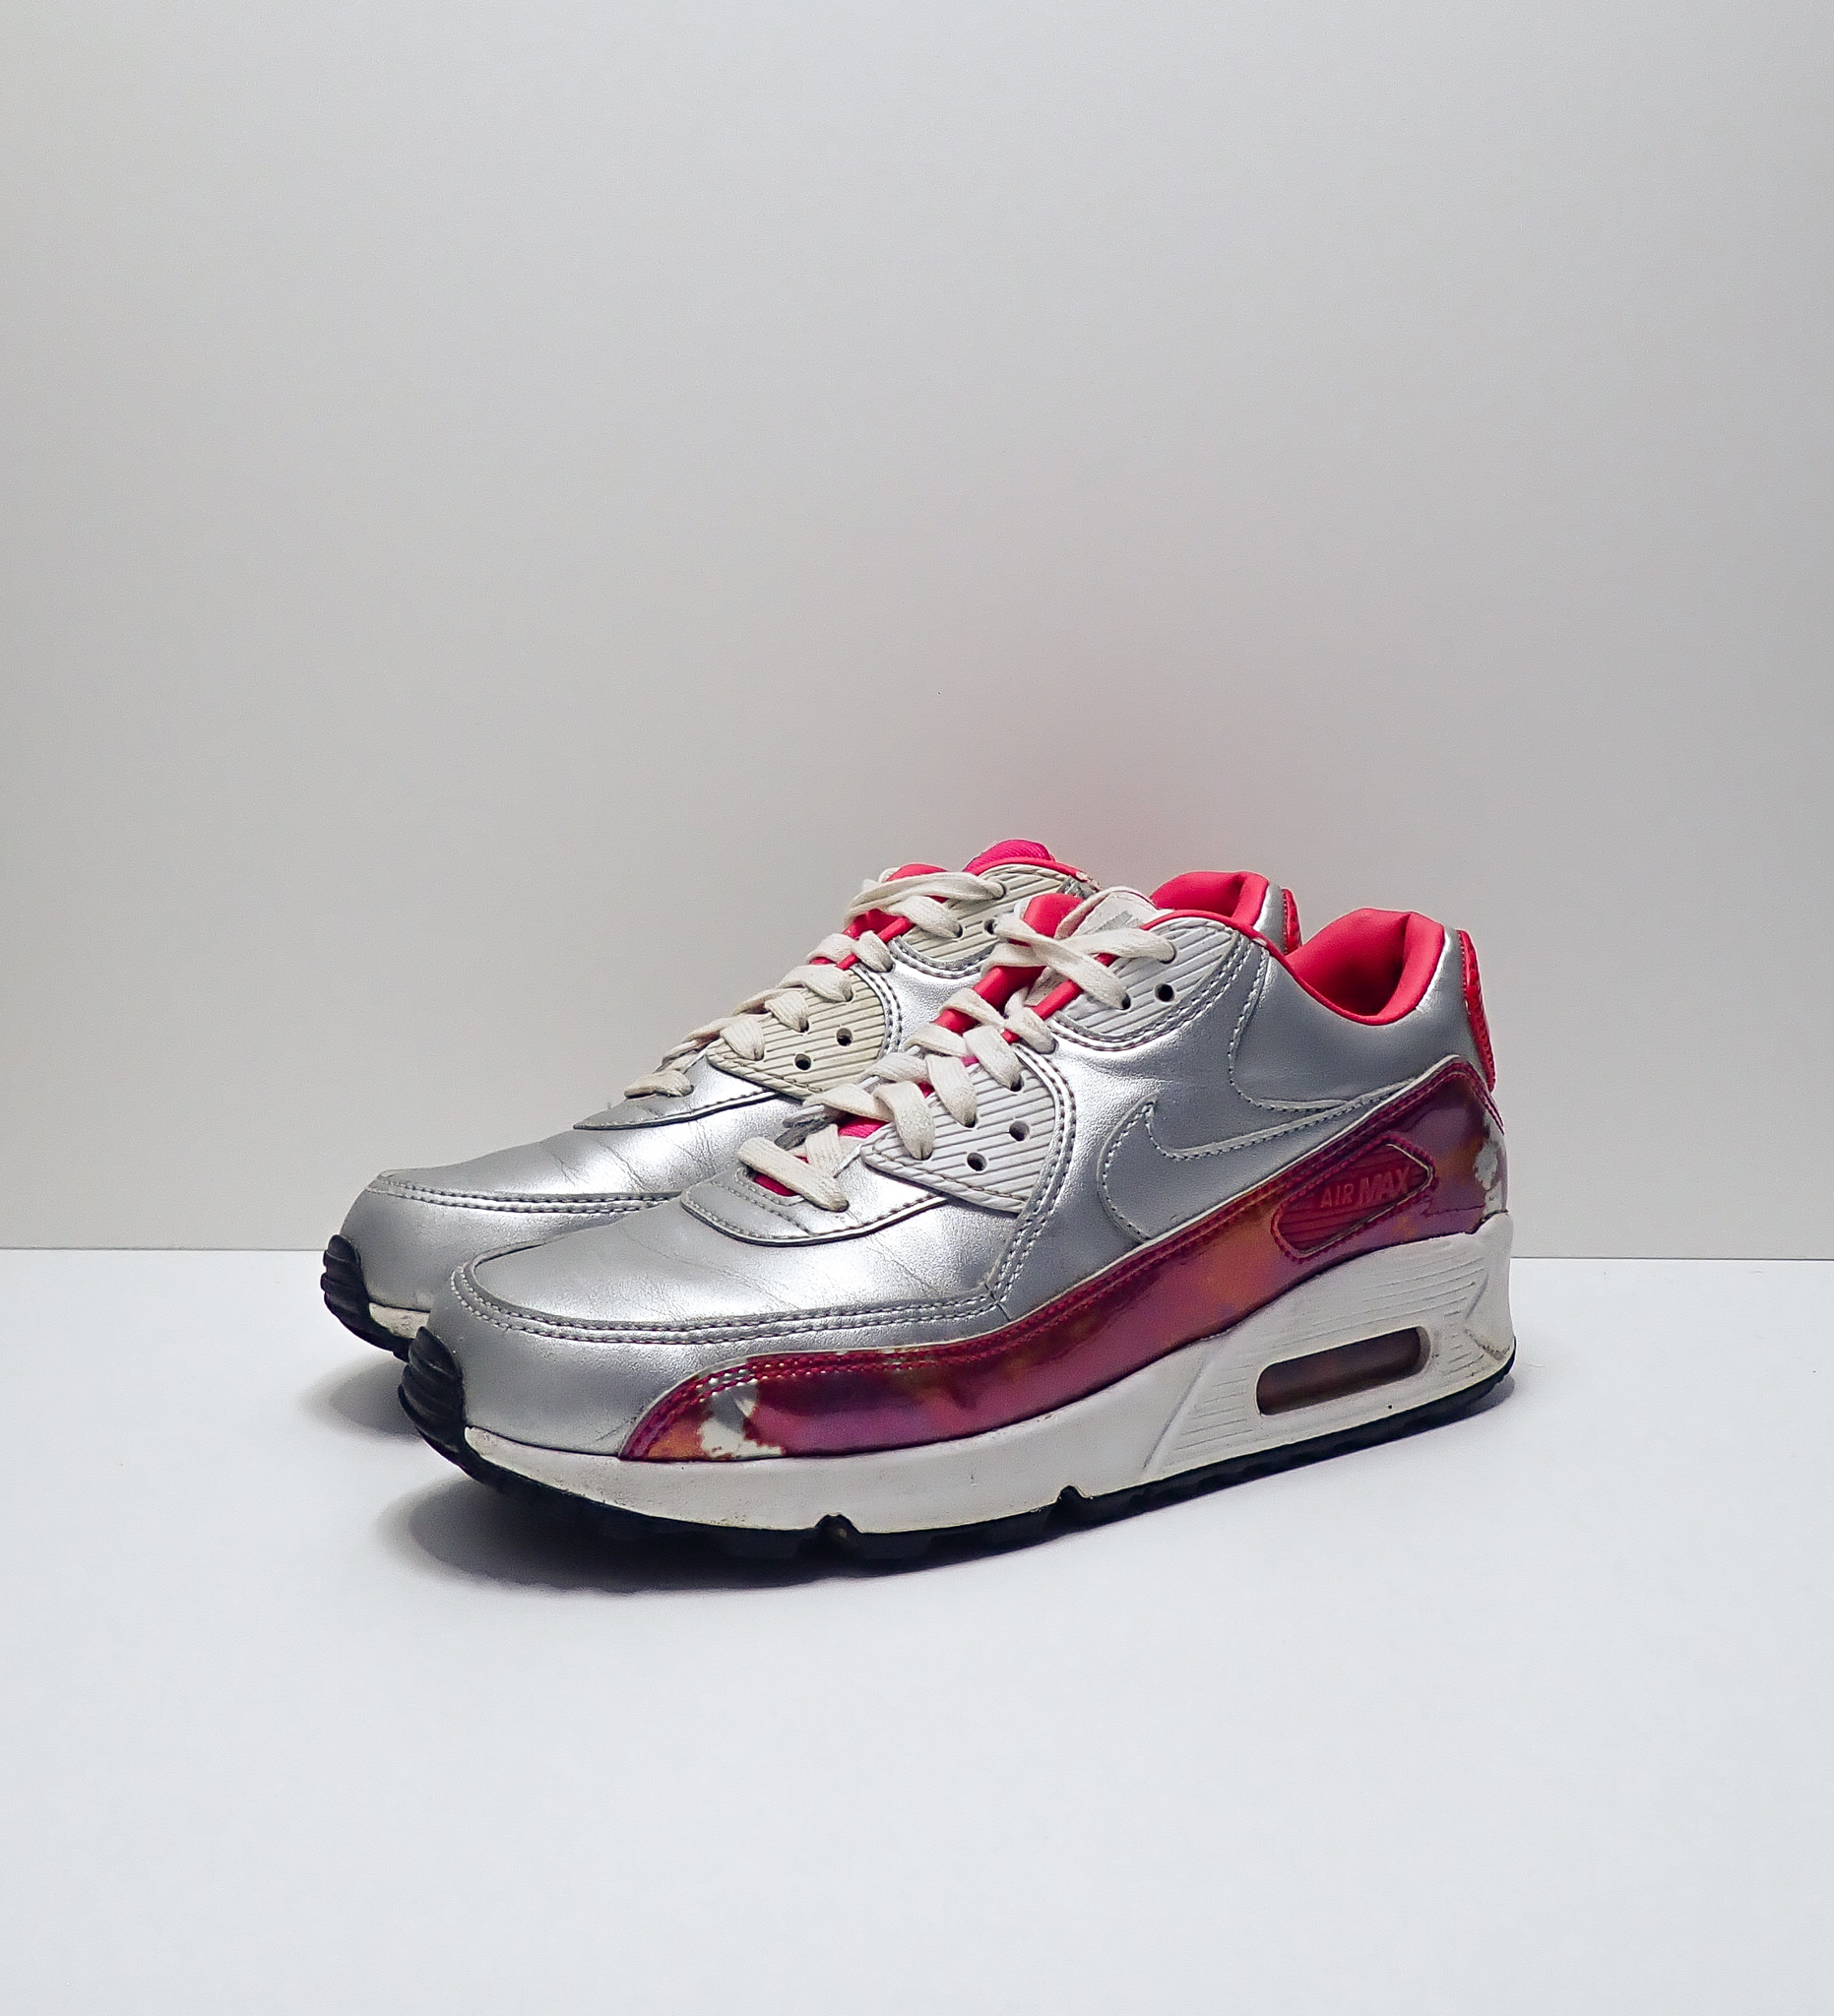 Nike Air Max 90 Premium Air Brush